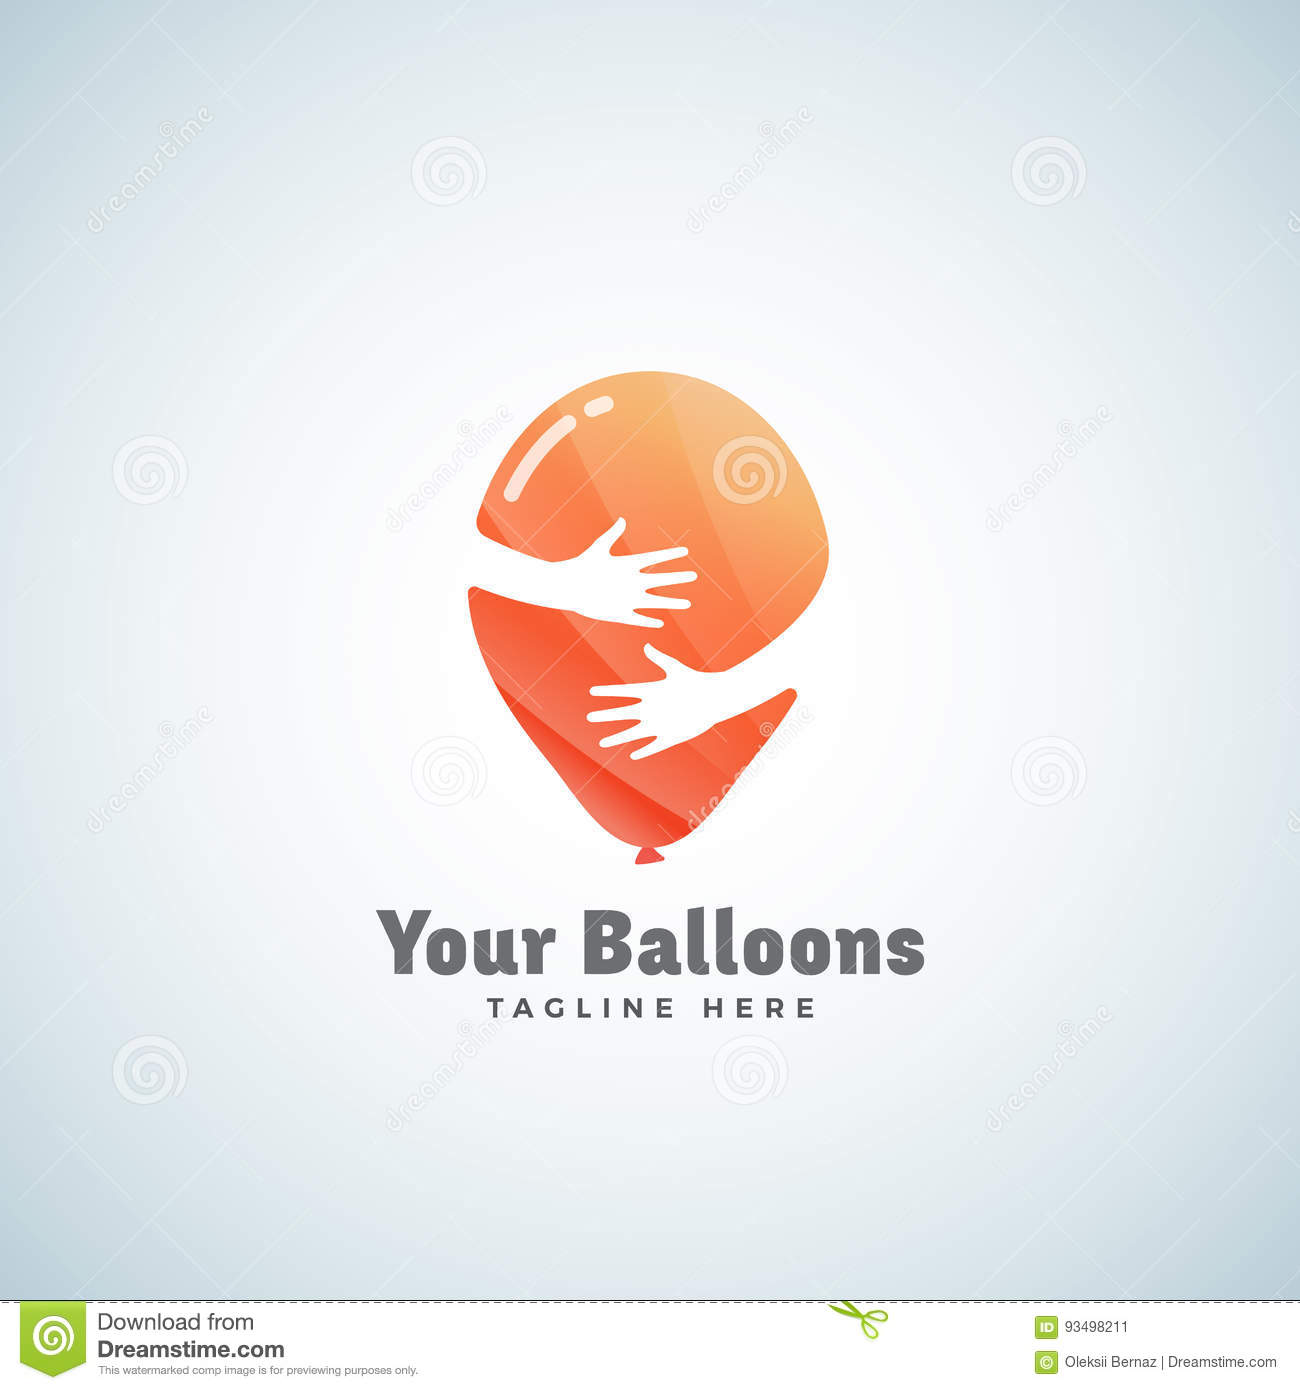 Balloons Abstract Vector Sign, Emblem or Logo Template. Balloon in Hands Negative Space Concept.